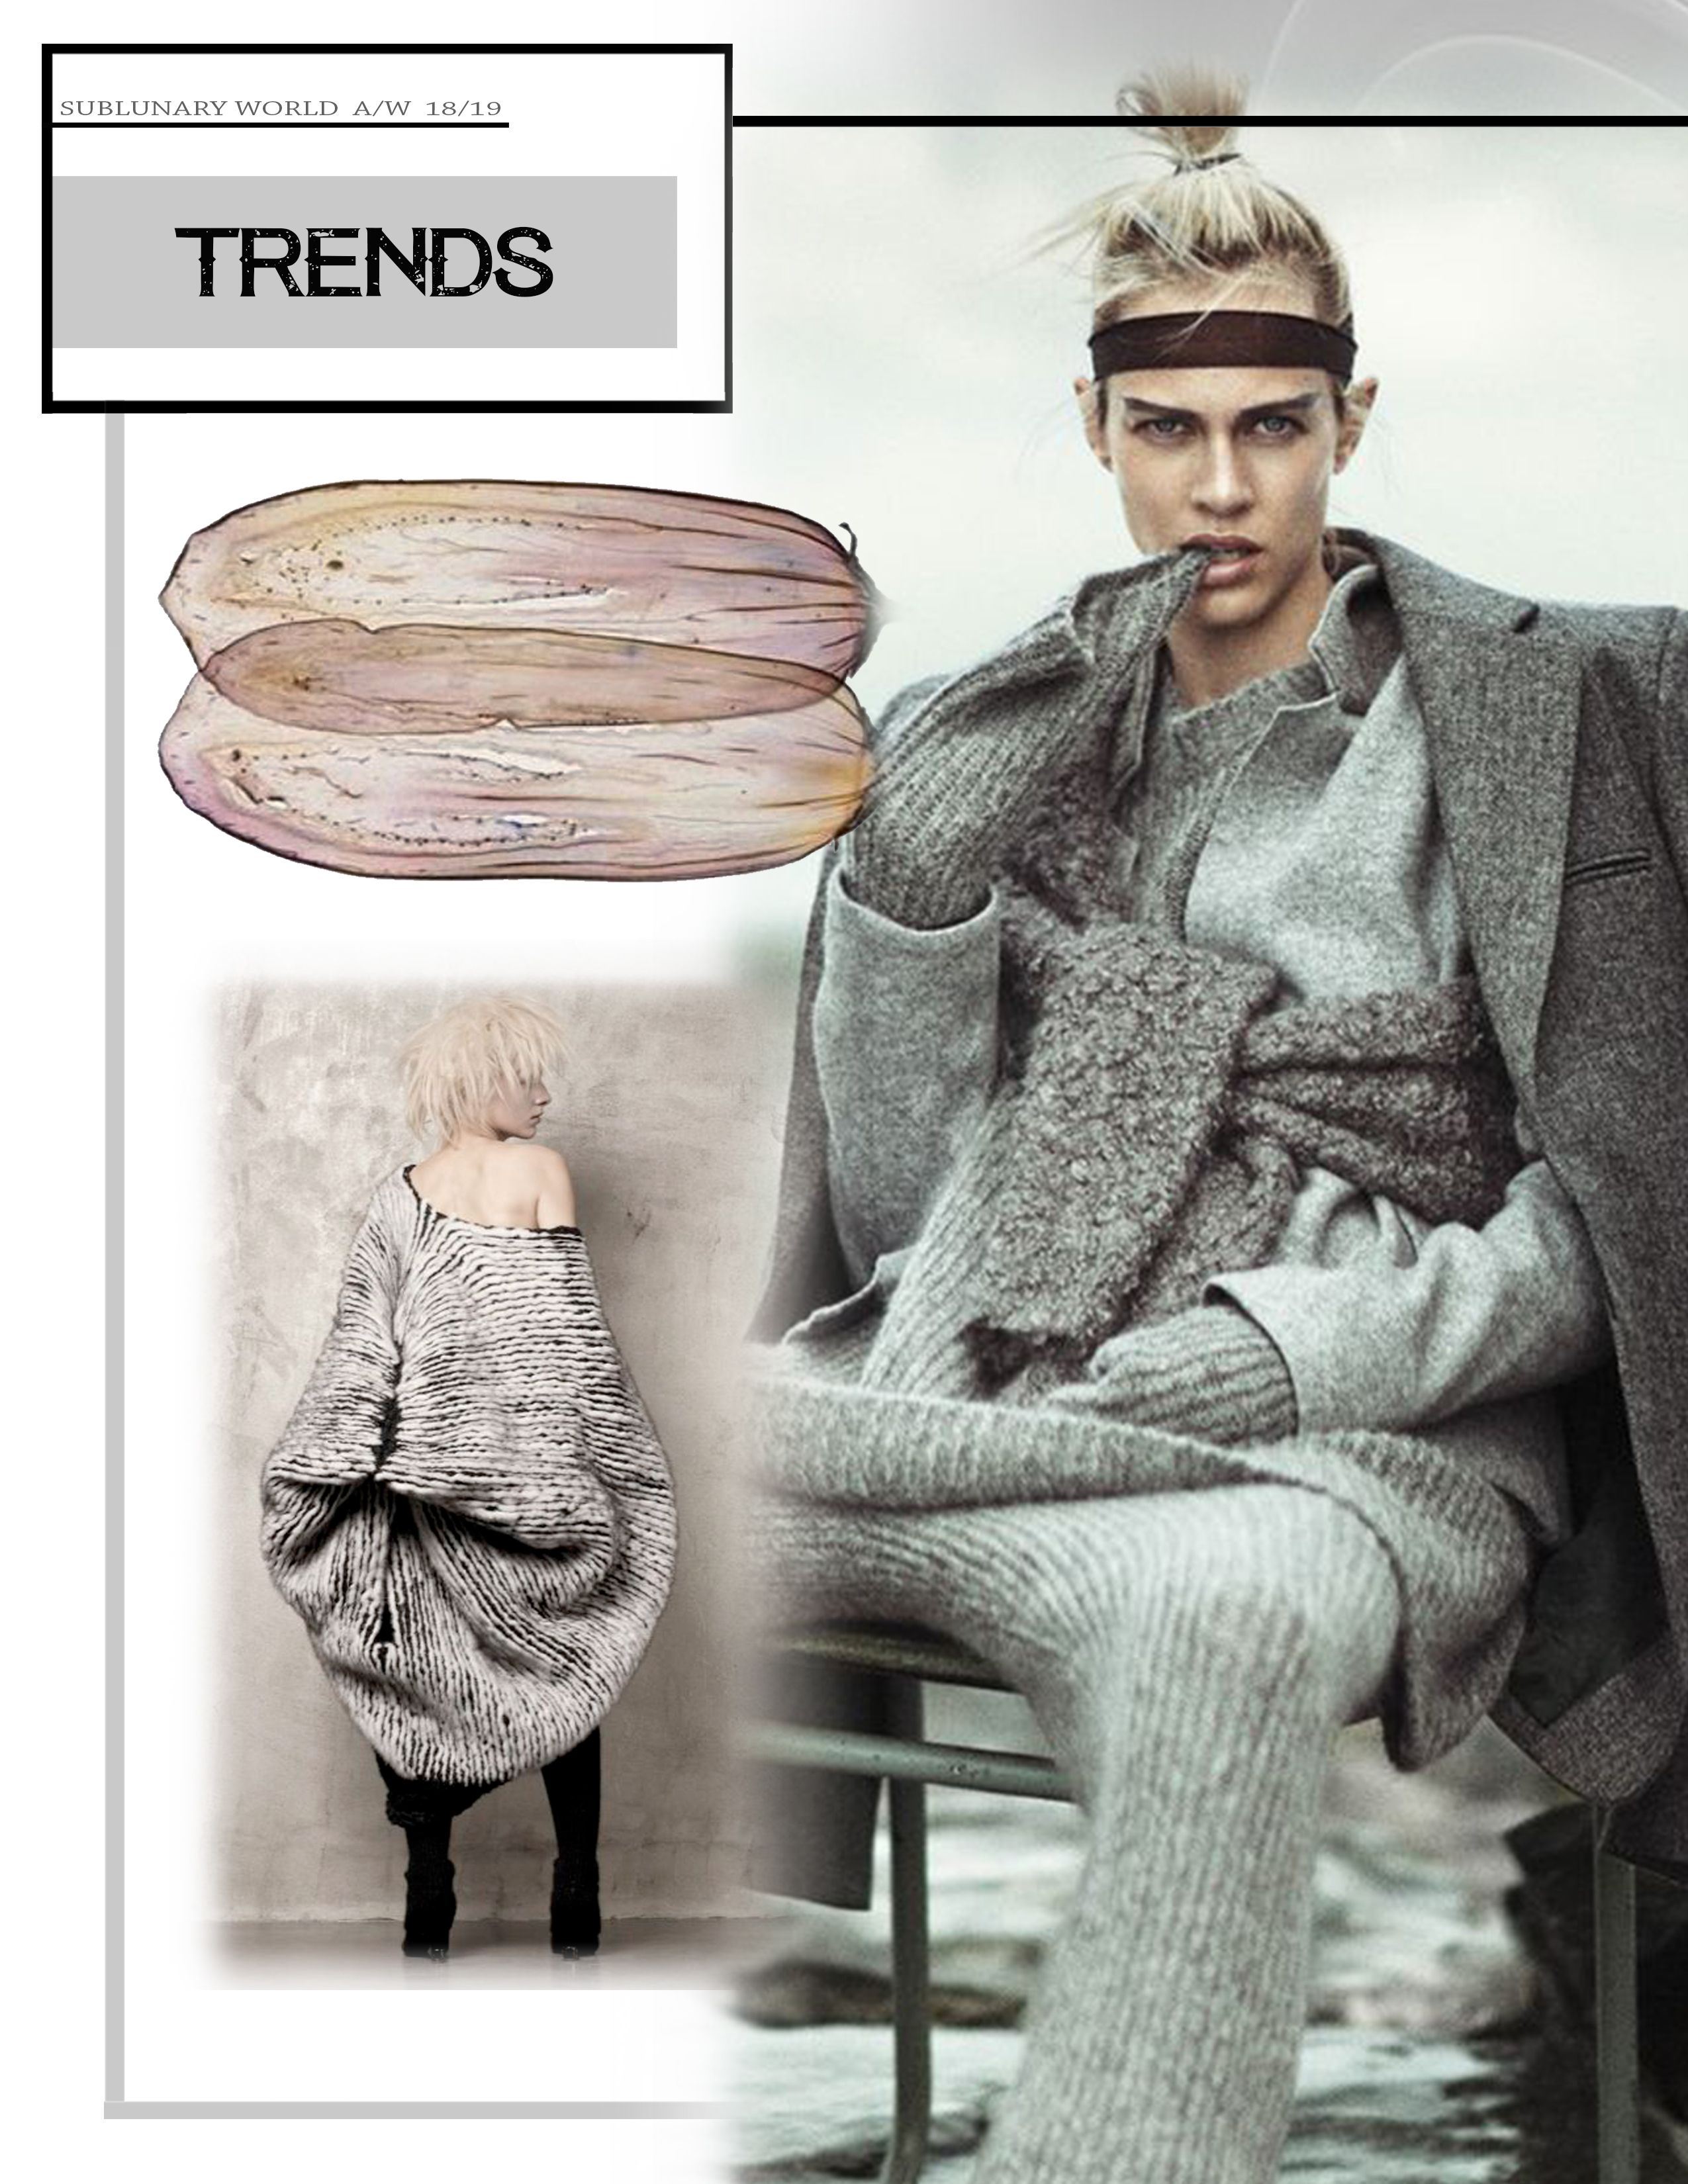 The Trend Book Focuses Of The Trend Forecasting For Autumn